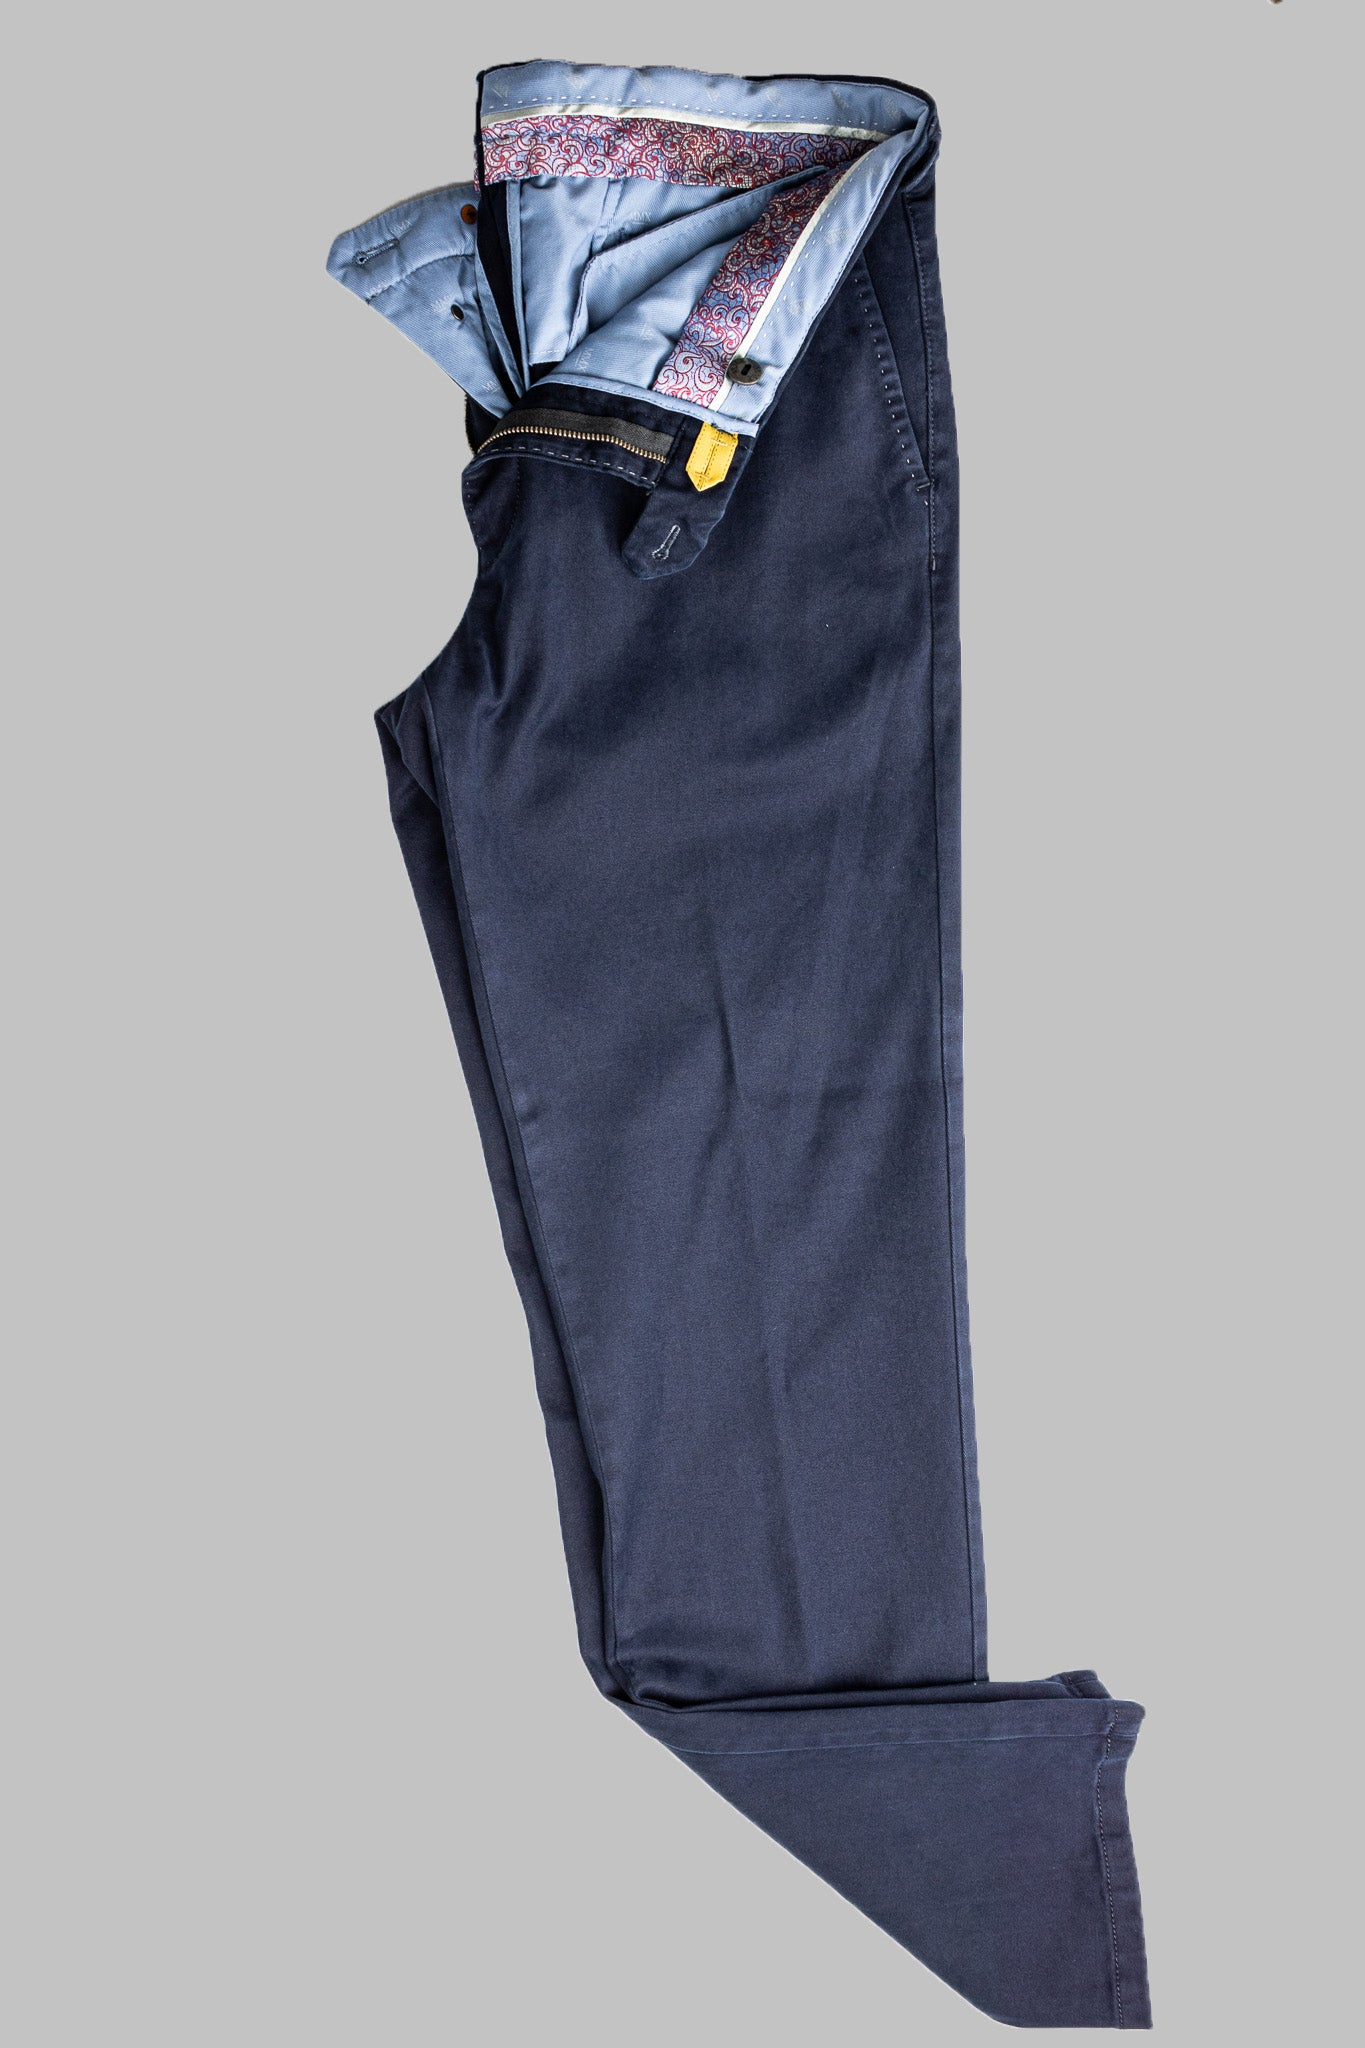 MMX 7586 Lynx Regular Fit Chinos for sale online ireland